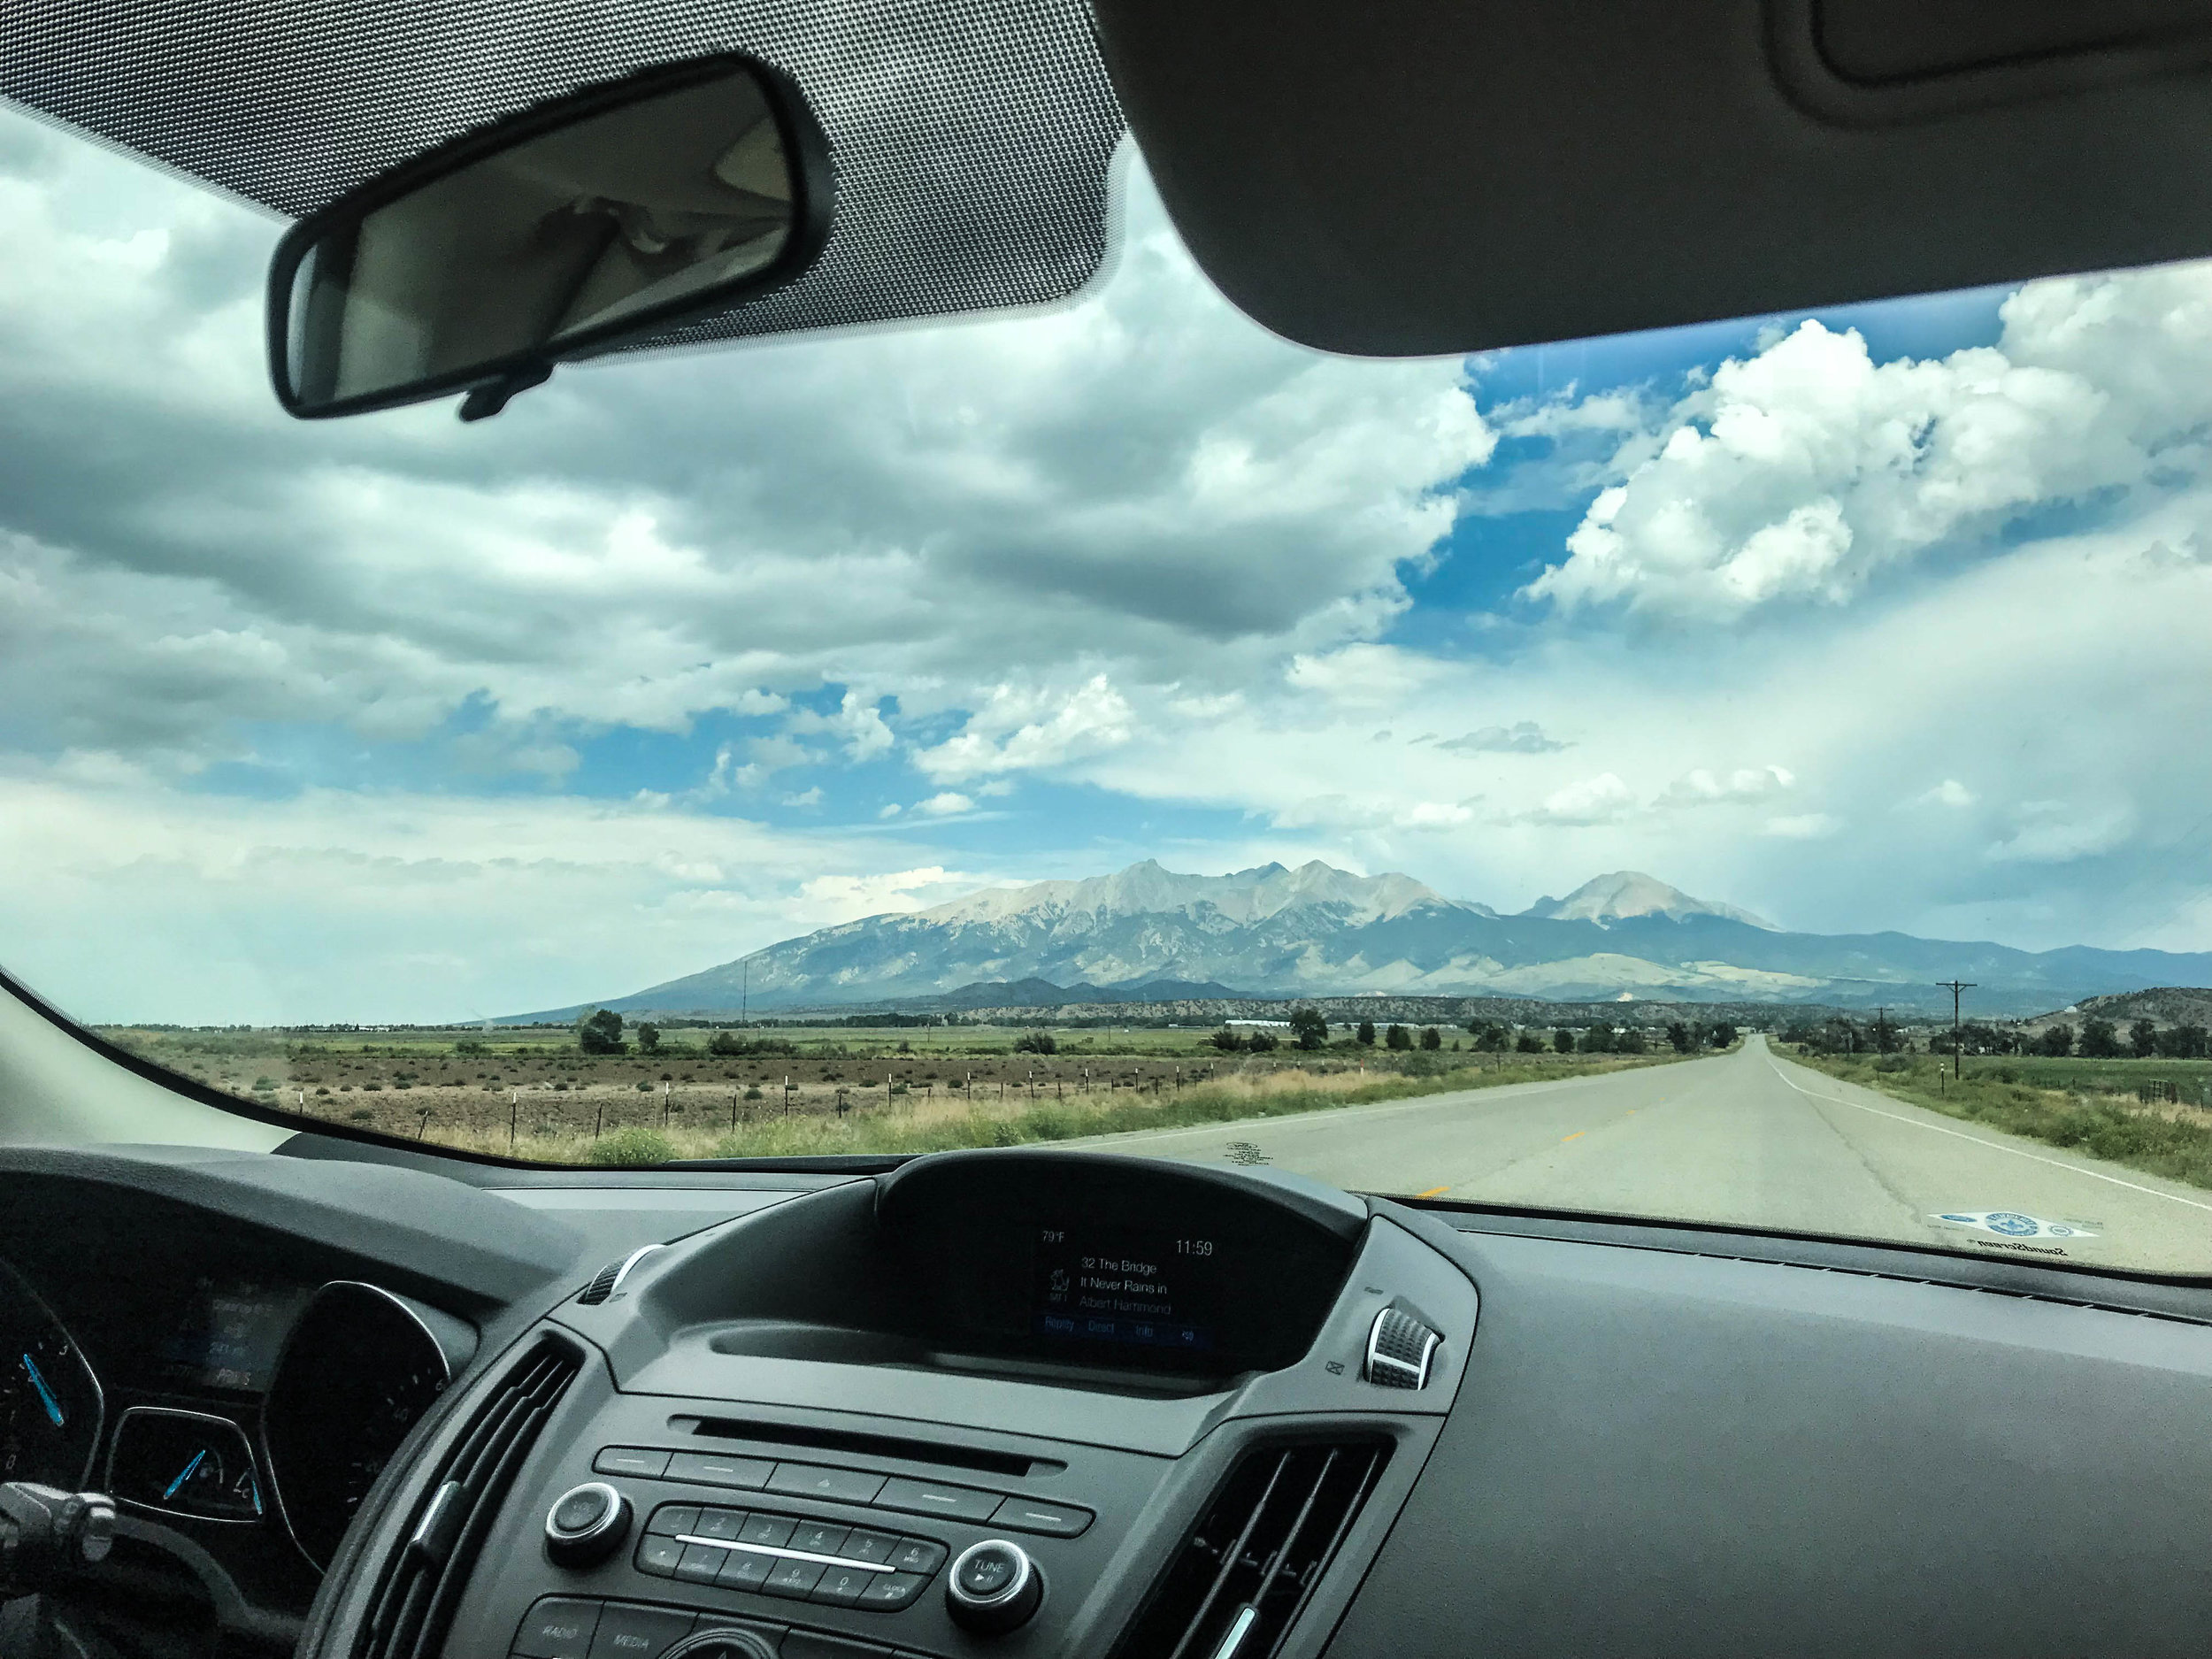 Views of the Sangre de Cristo mountains near Taos, NM.